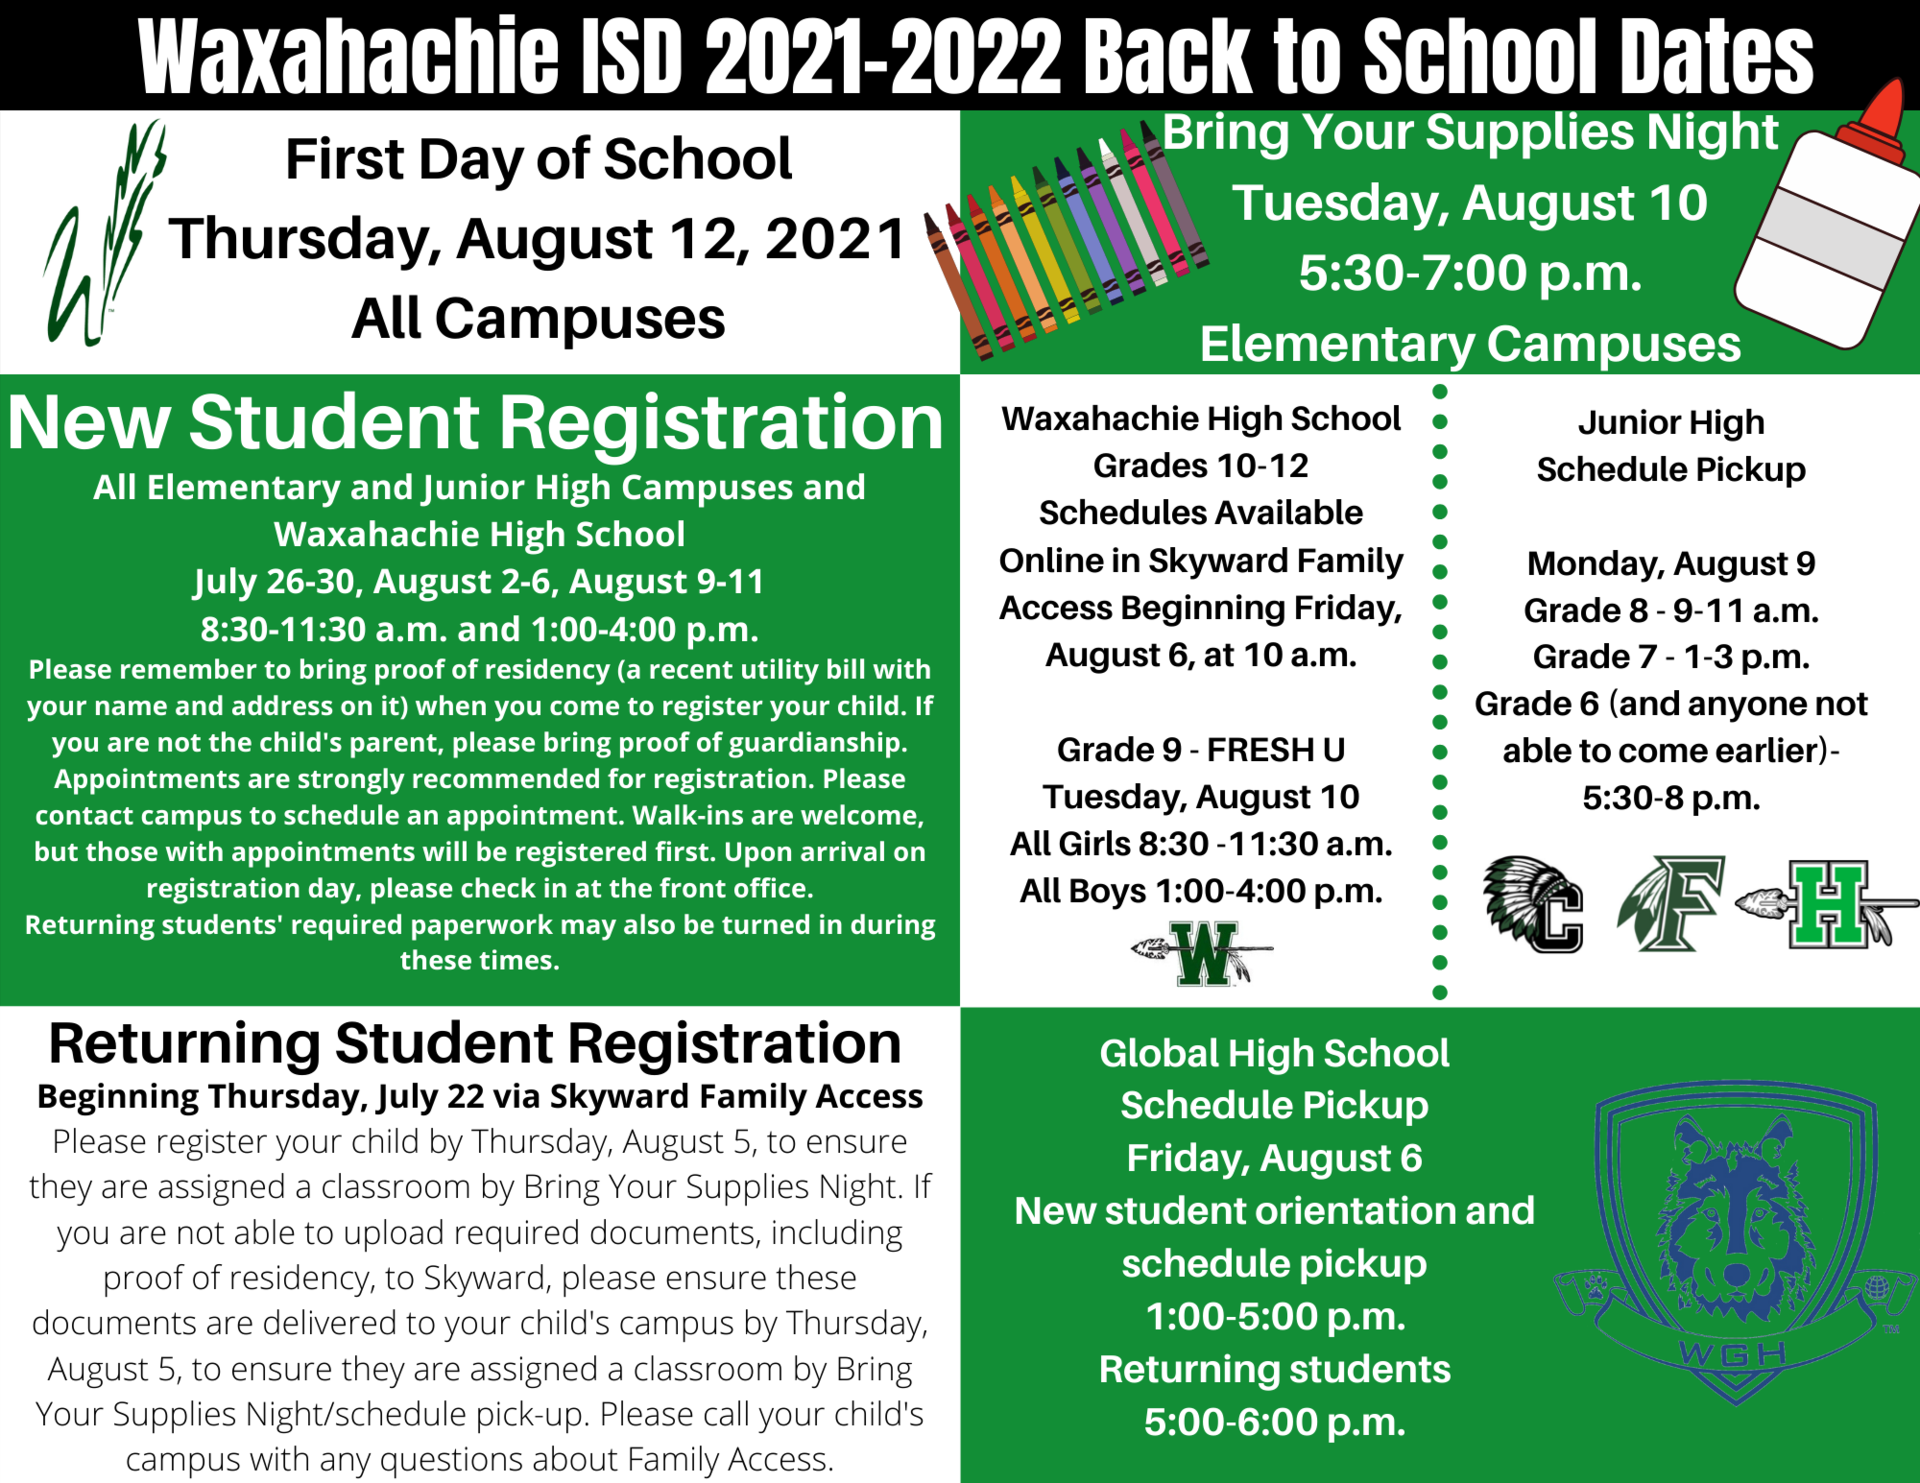 graphic with back to school dates as described in text below